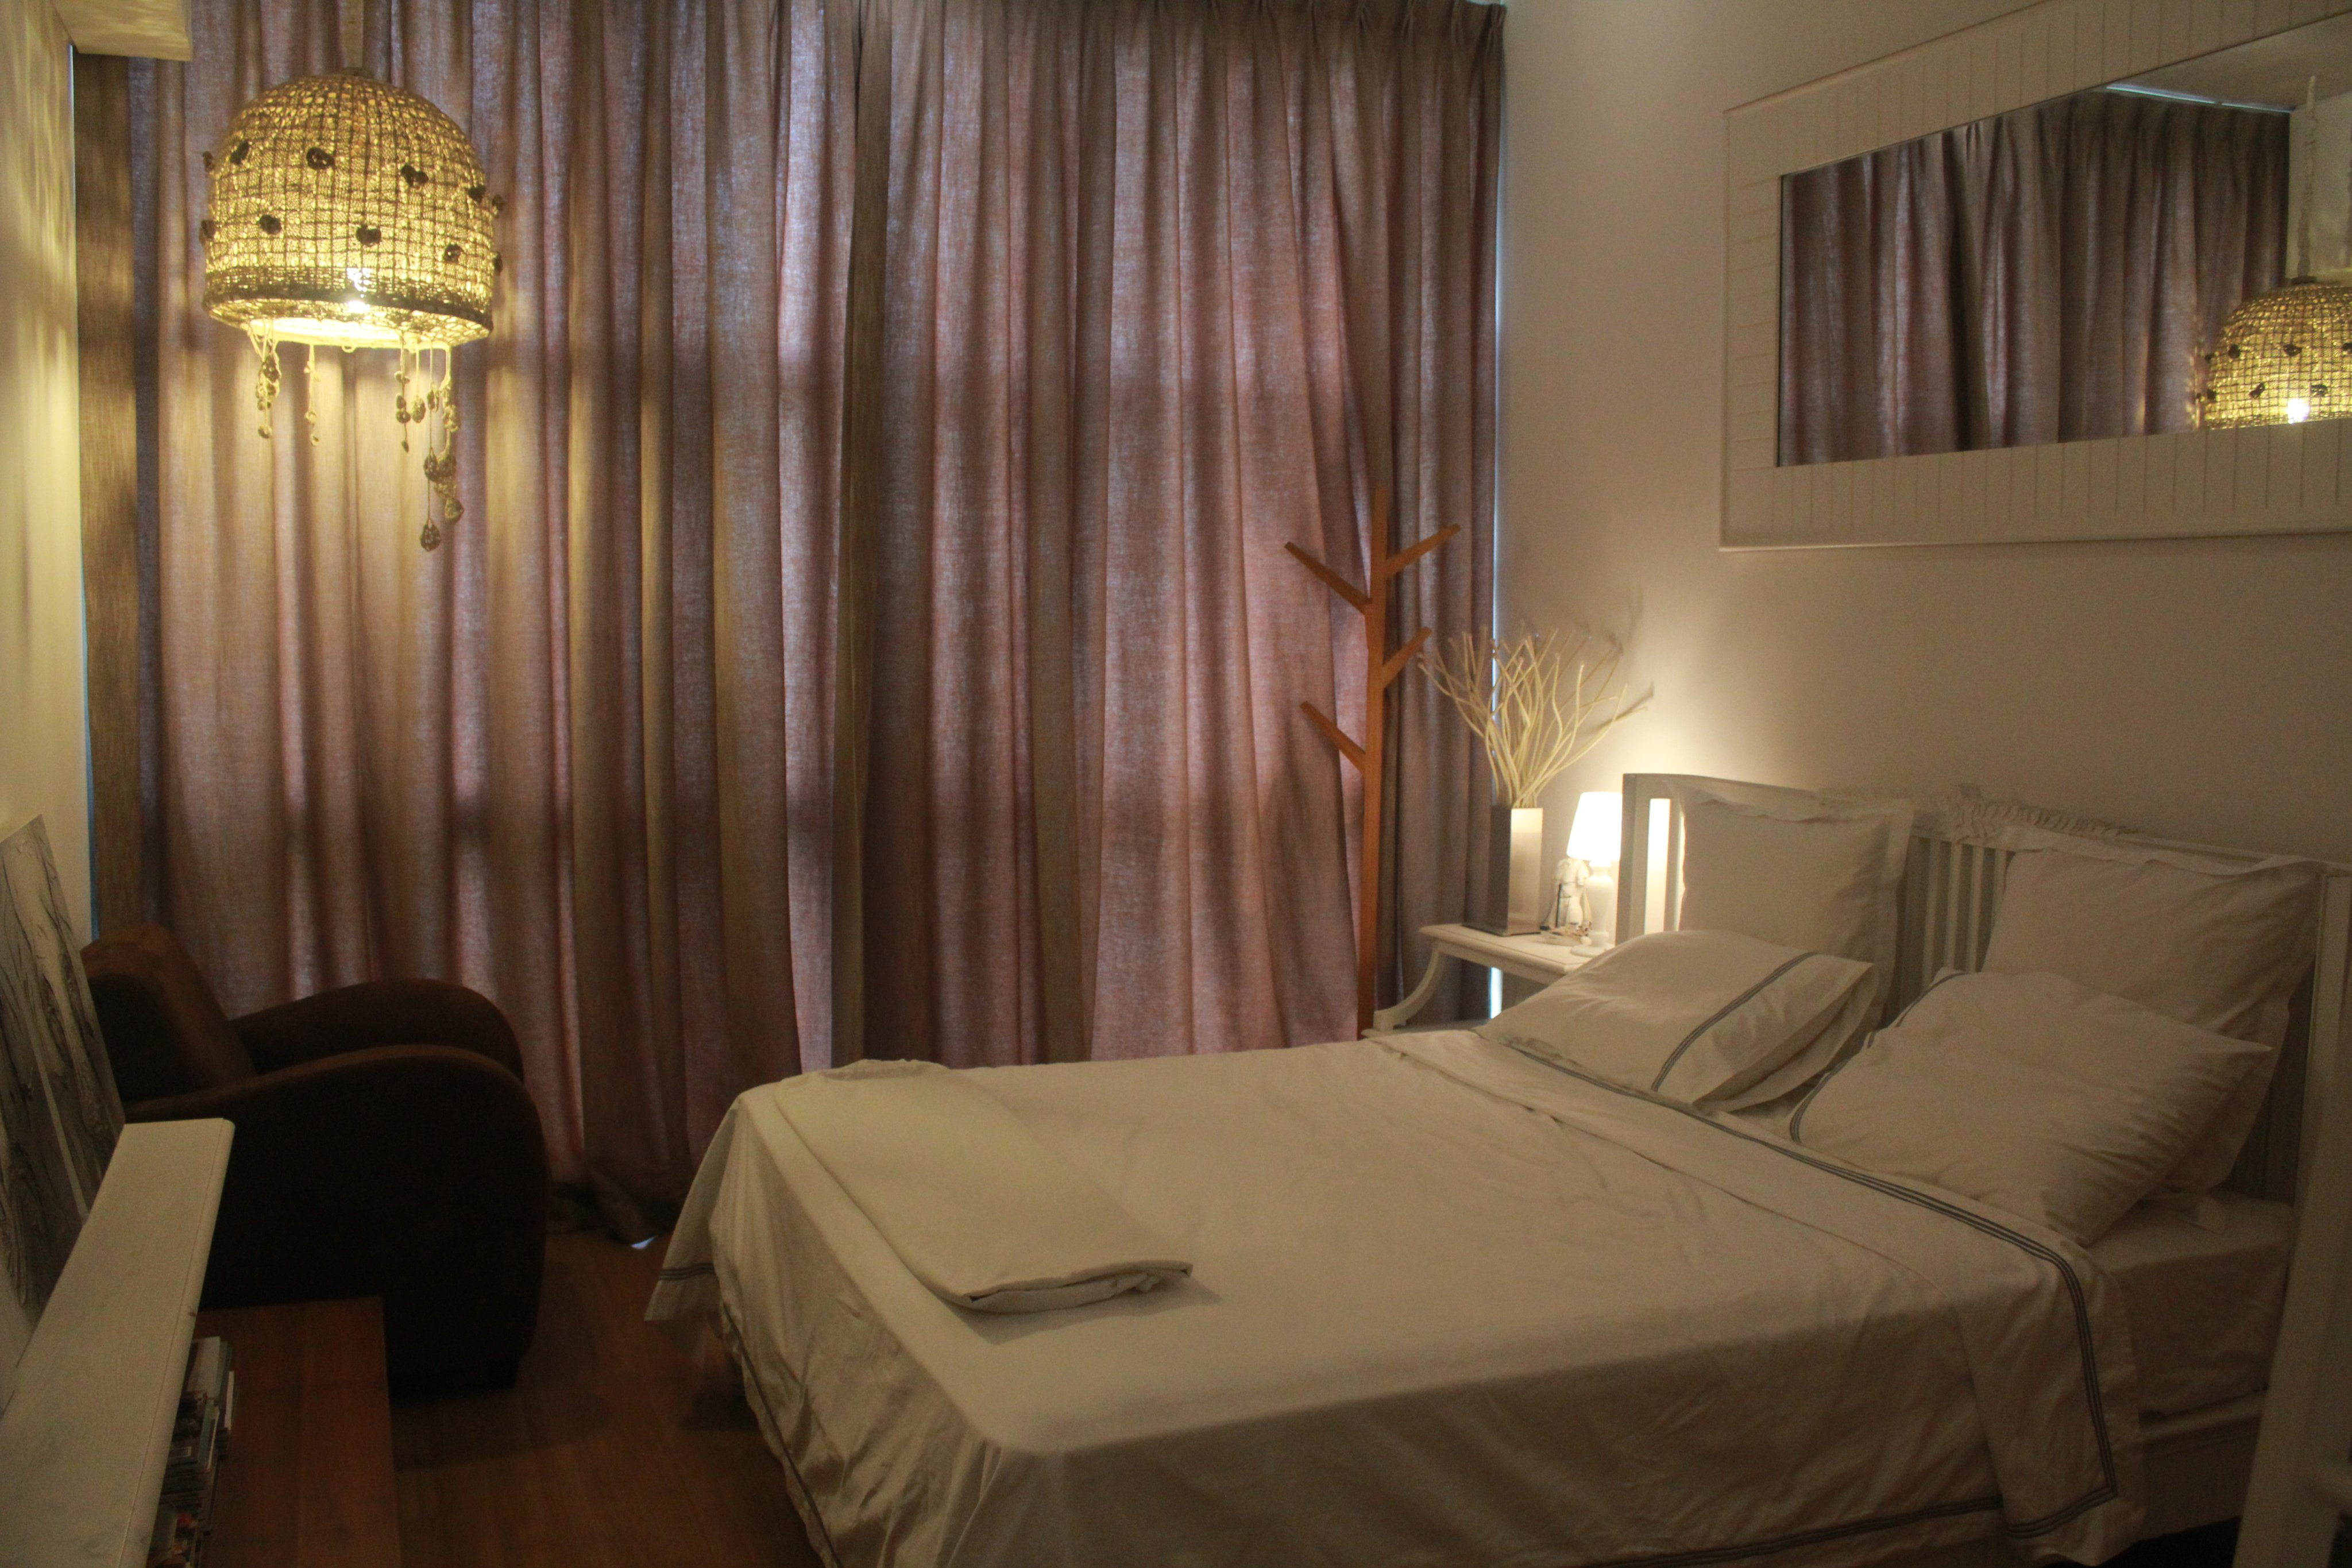 saigon pearl apartment for rent in binh thanh district hcmc D201237(6)